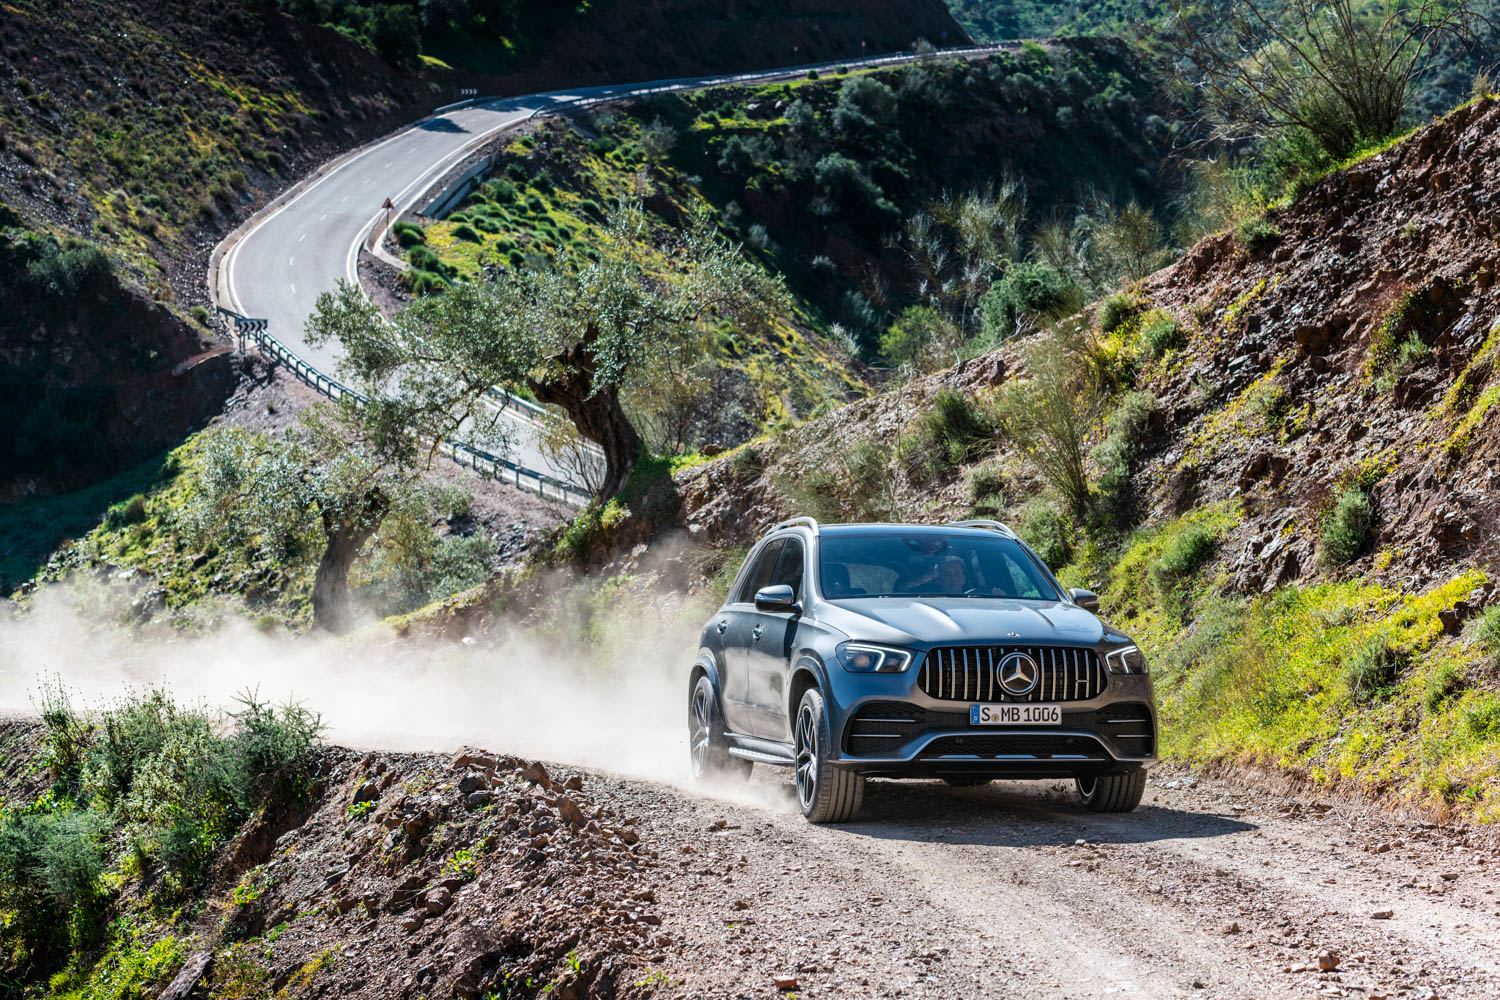 Mercedes-AMG GLE 53 trail driving